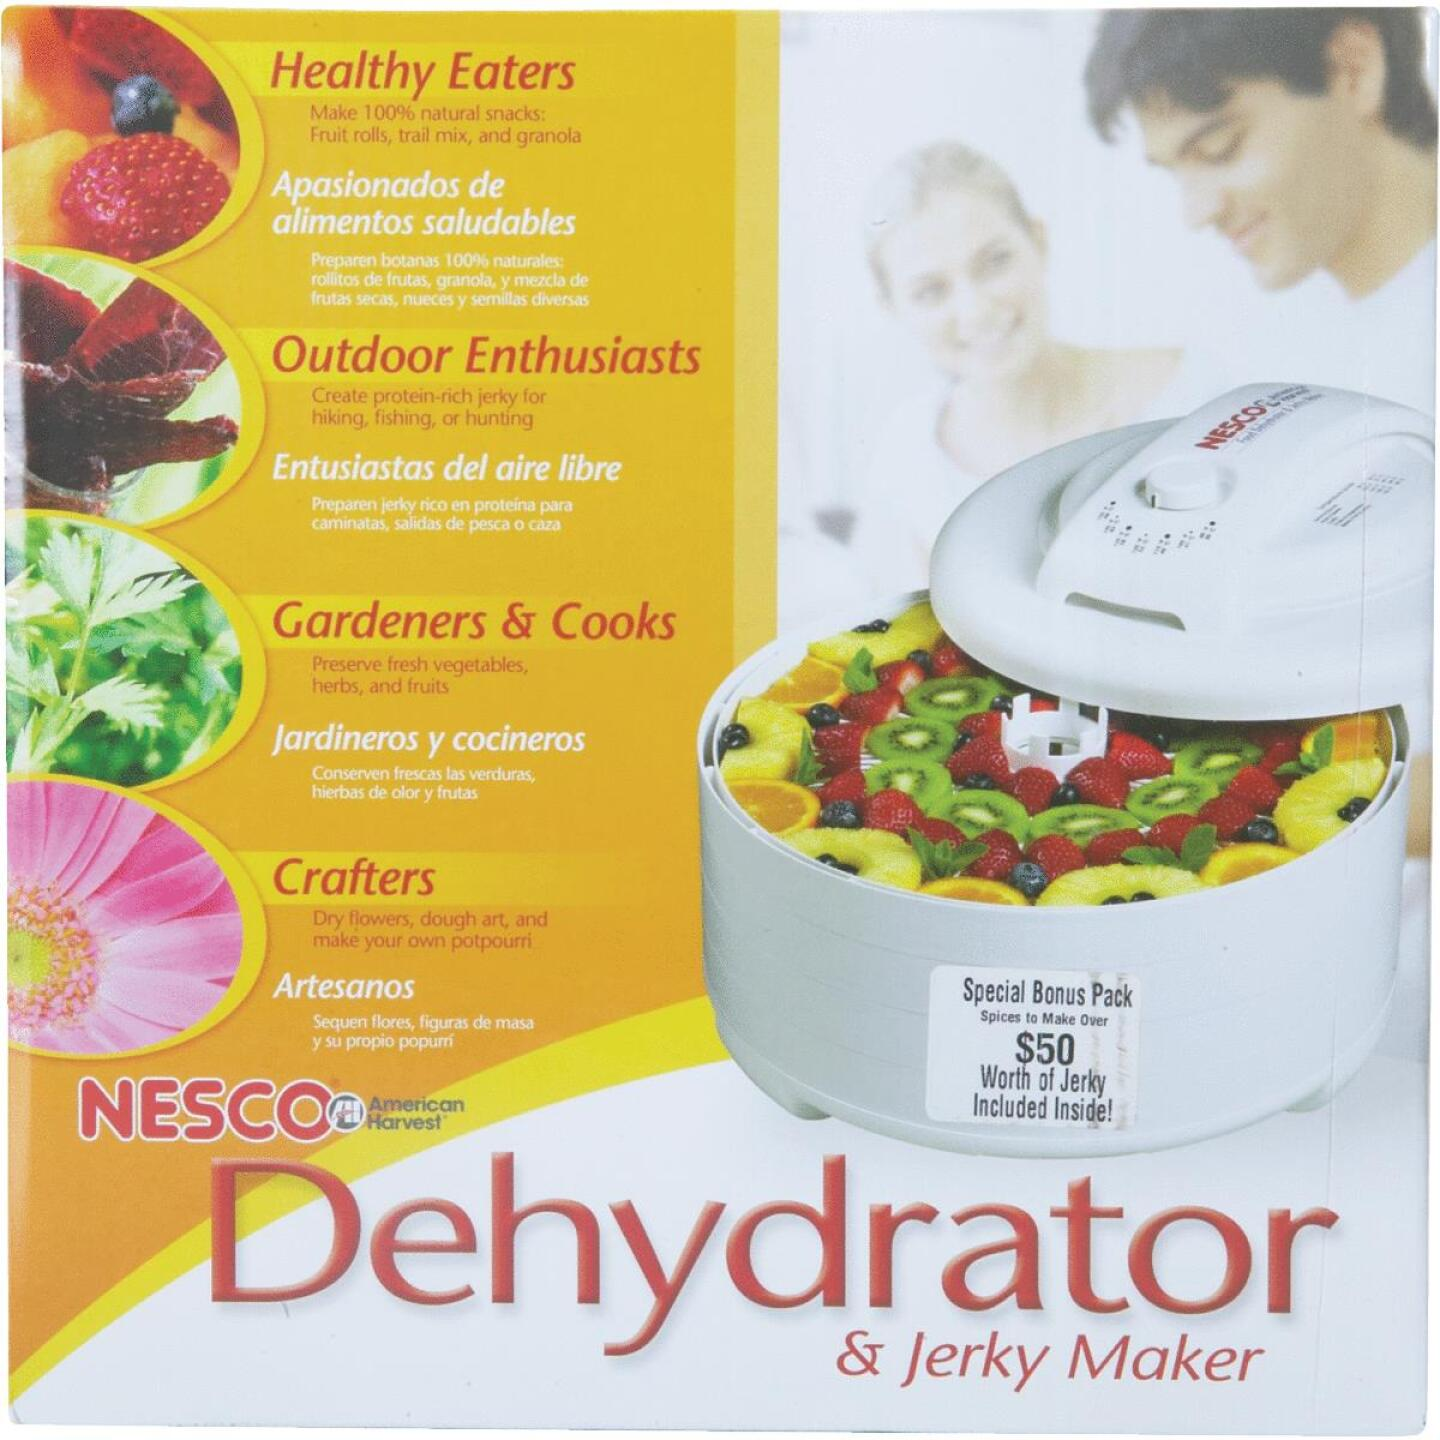 Nesco American Harvest Snackmaster Express Food Dehydrator Image 2